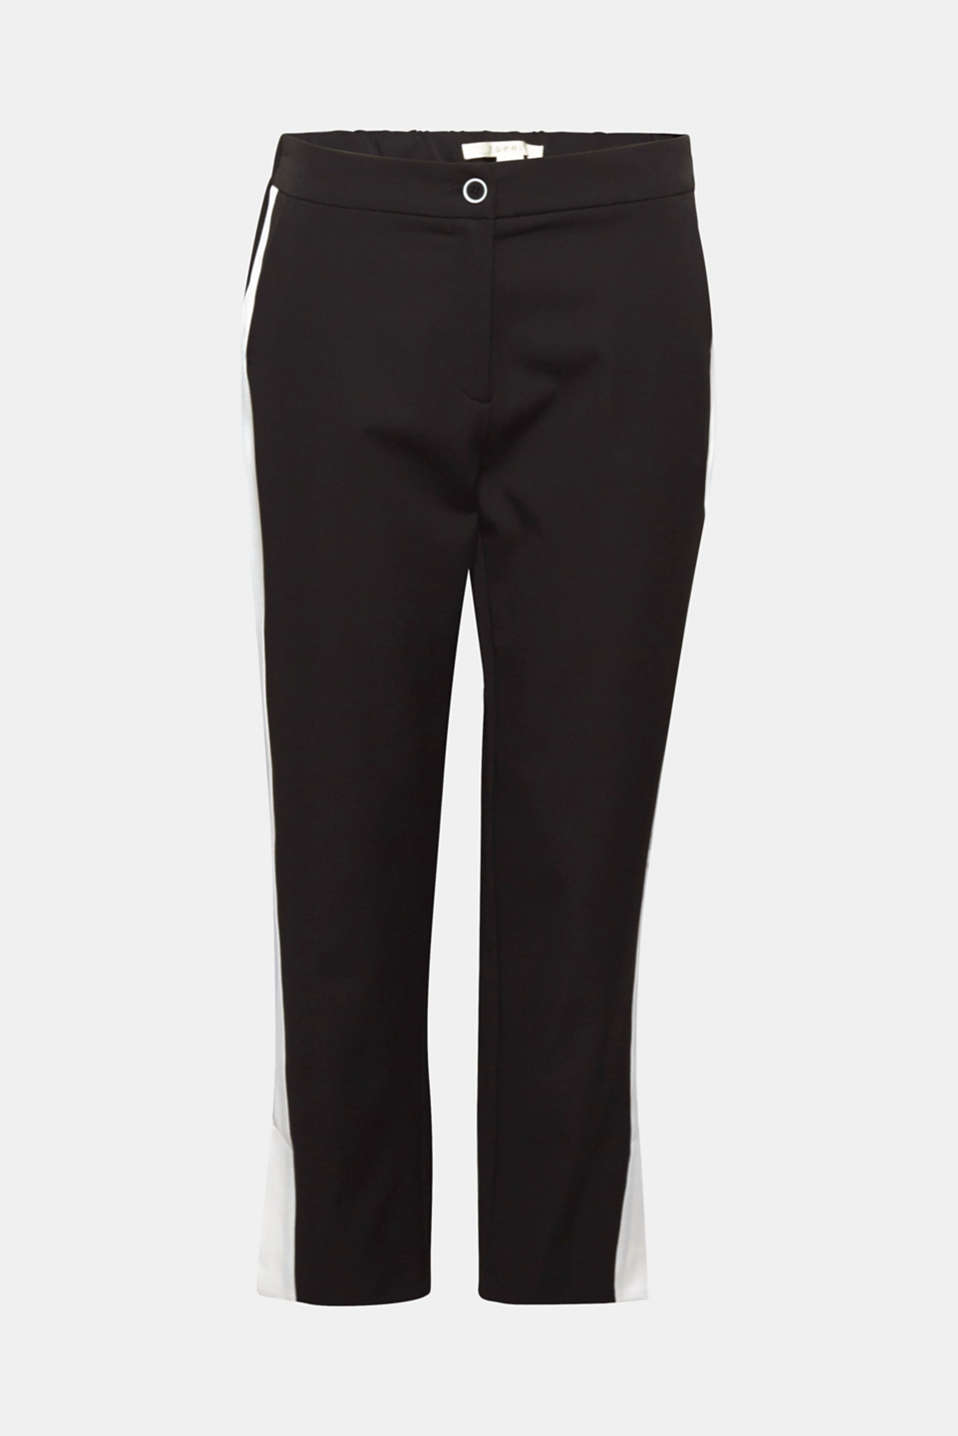 You will be fully on trend with these stretch trousers, which impress with the tuxedo stripes in a contrasting colour and cropped leg length.